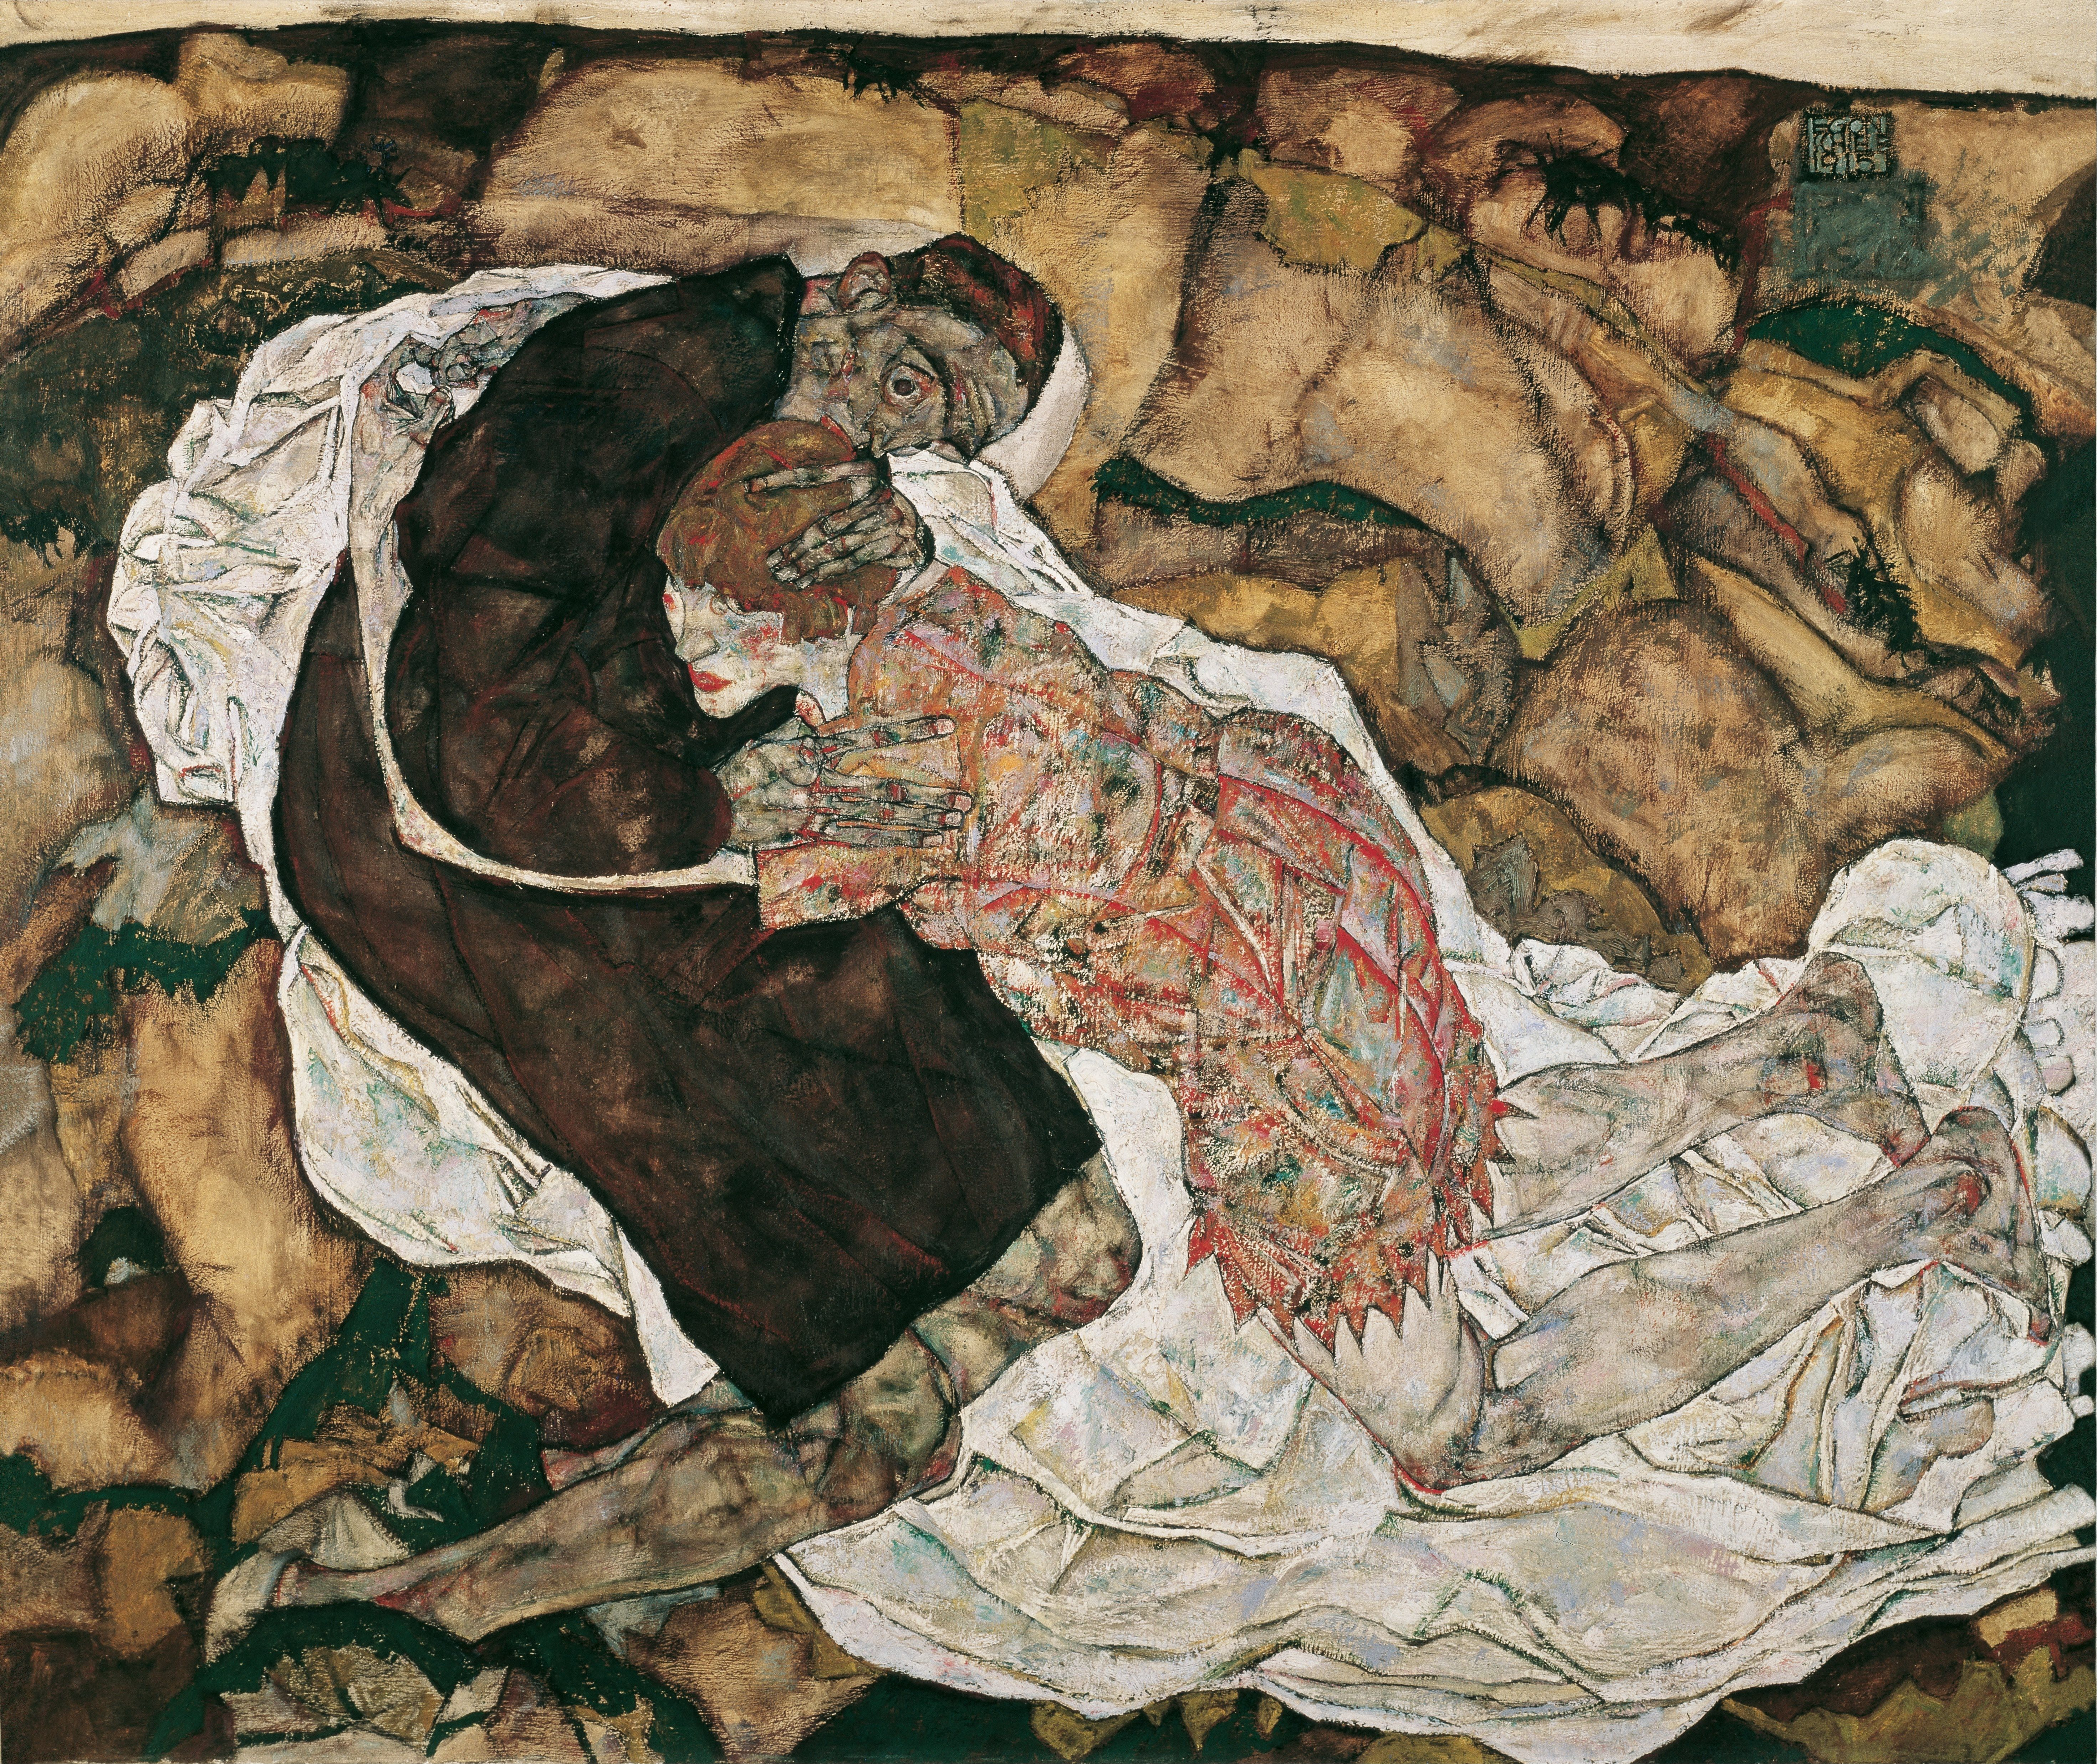 http://upload.wikimedia.org/wikipedia/commons/2/27/Egon_Schiele_012.jpg